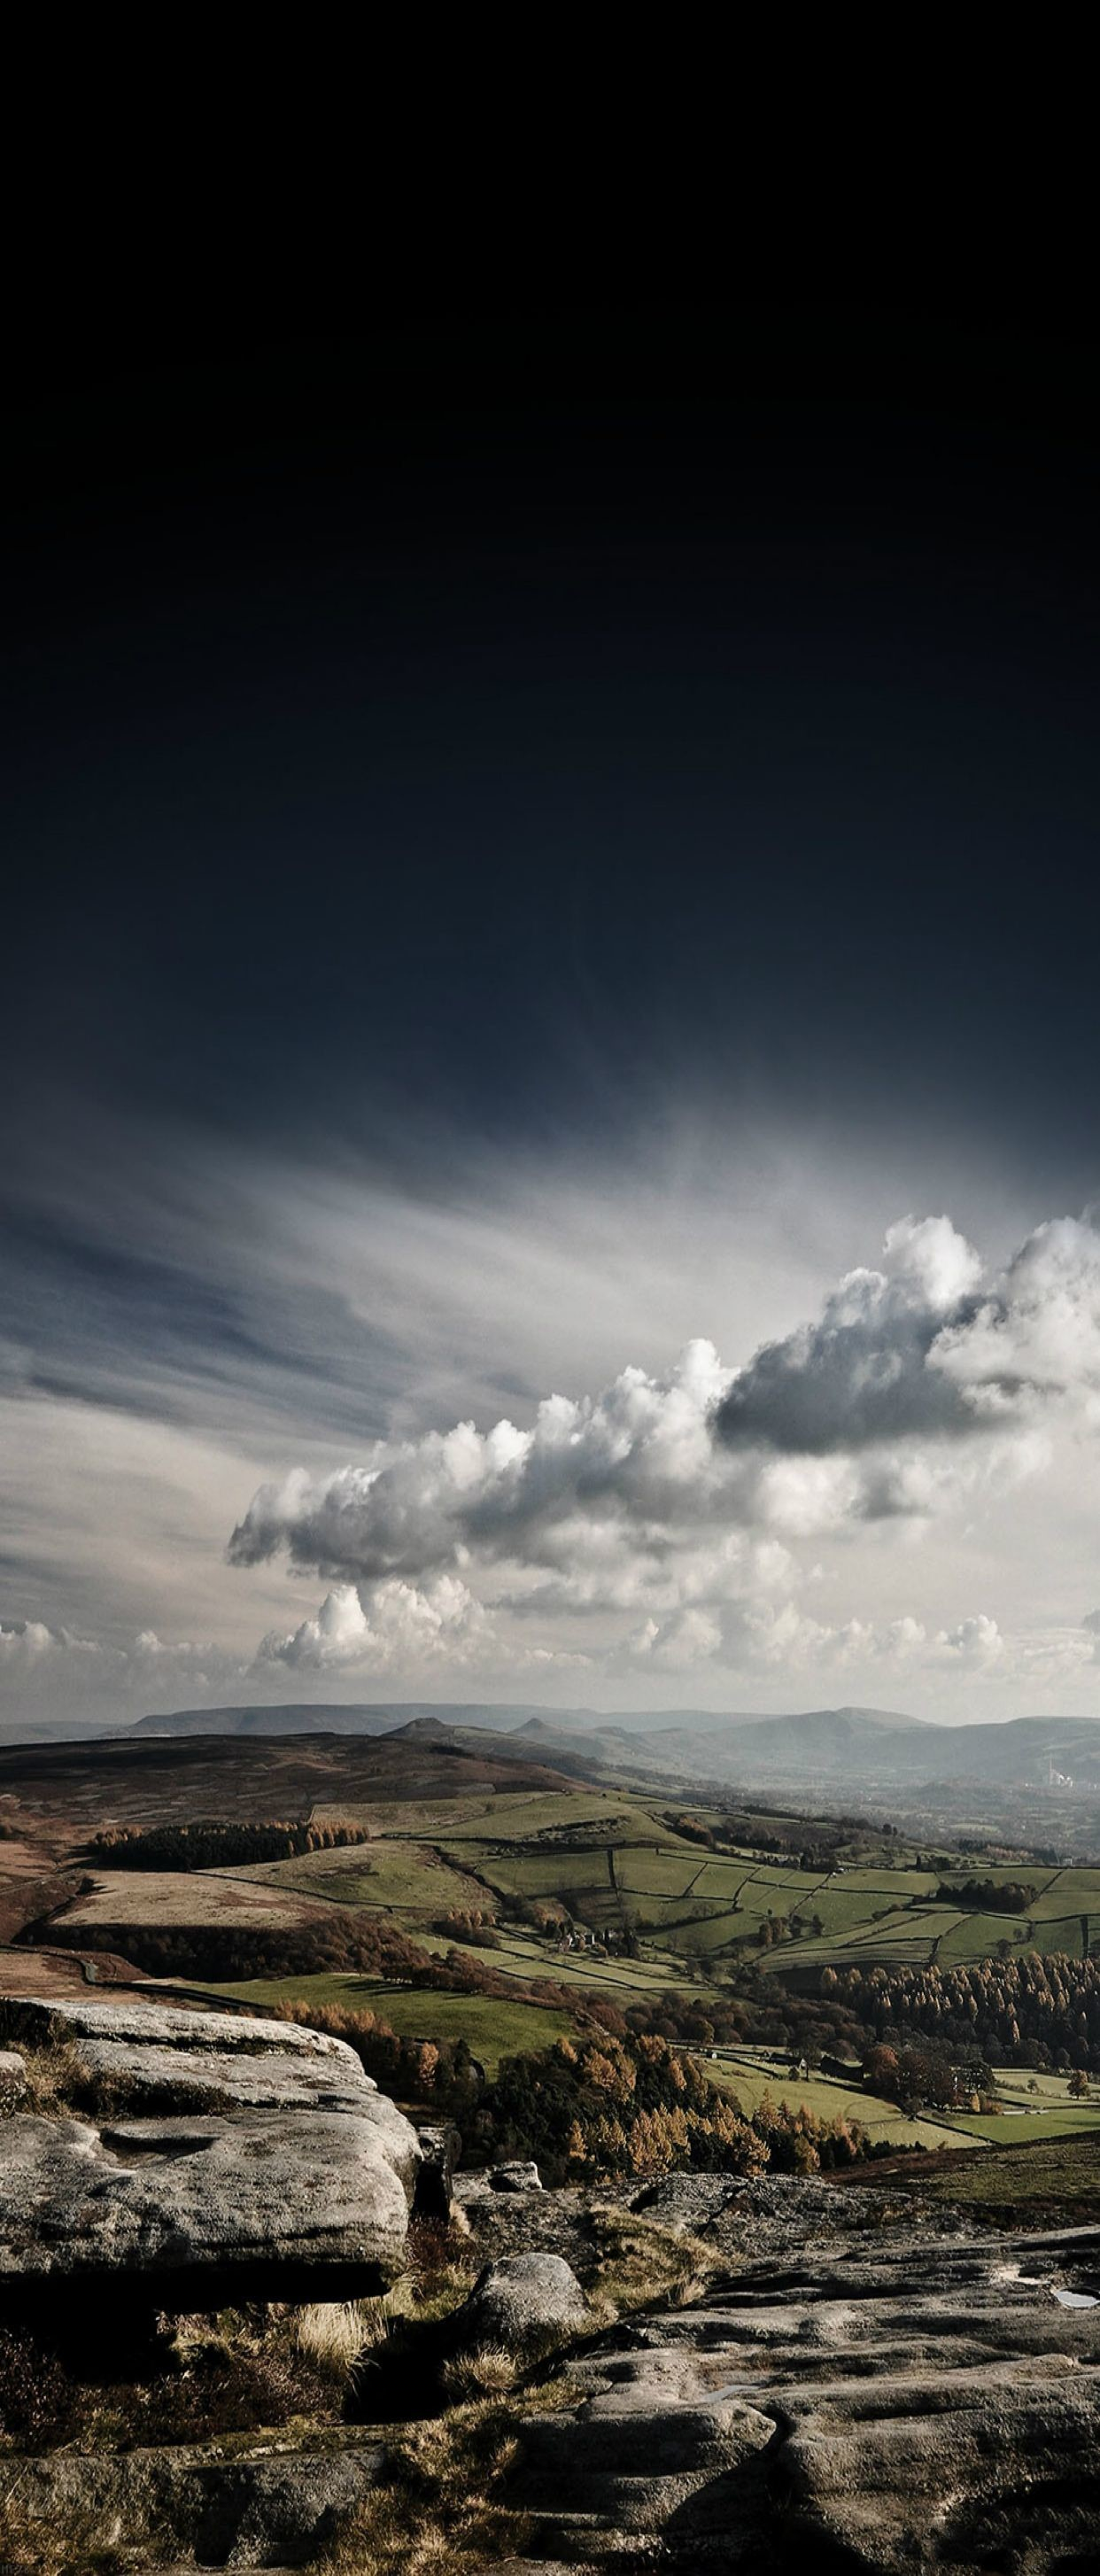 Res: 1242x2908, S8, note, wallpaper, backgrounds, nature, tranquil, skies, mountains,